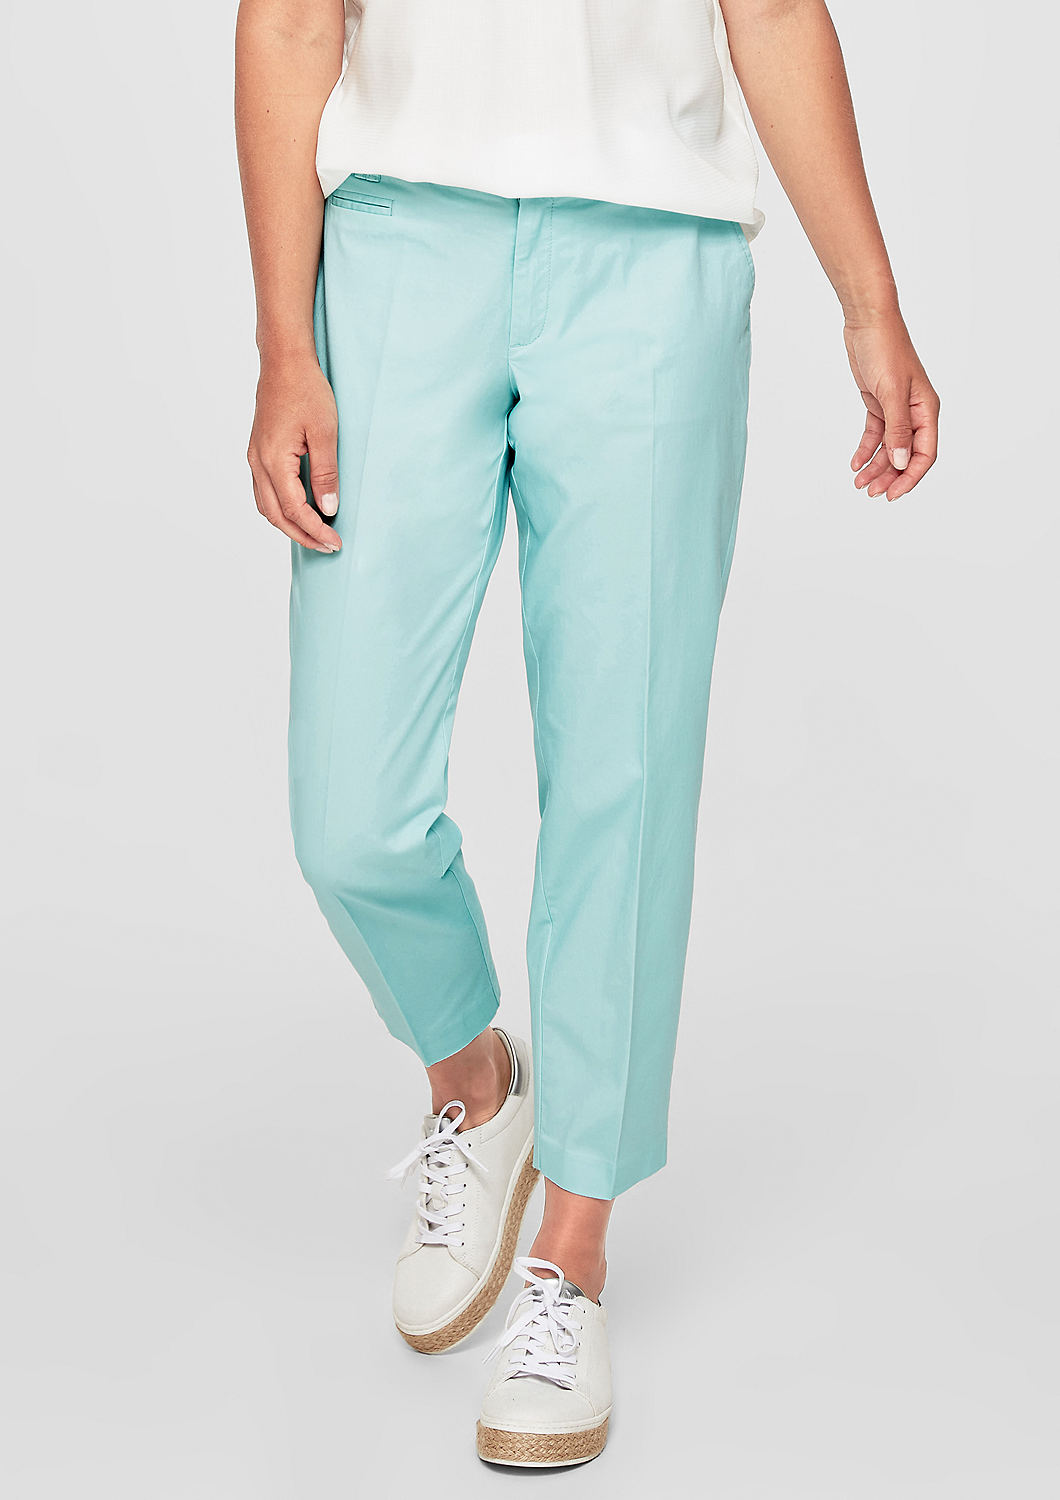 s.Oliver - Shape Ankle: Leichte Chino - 5